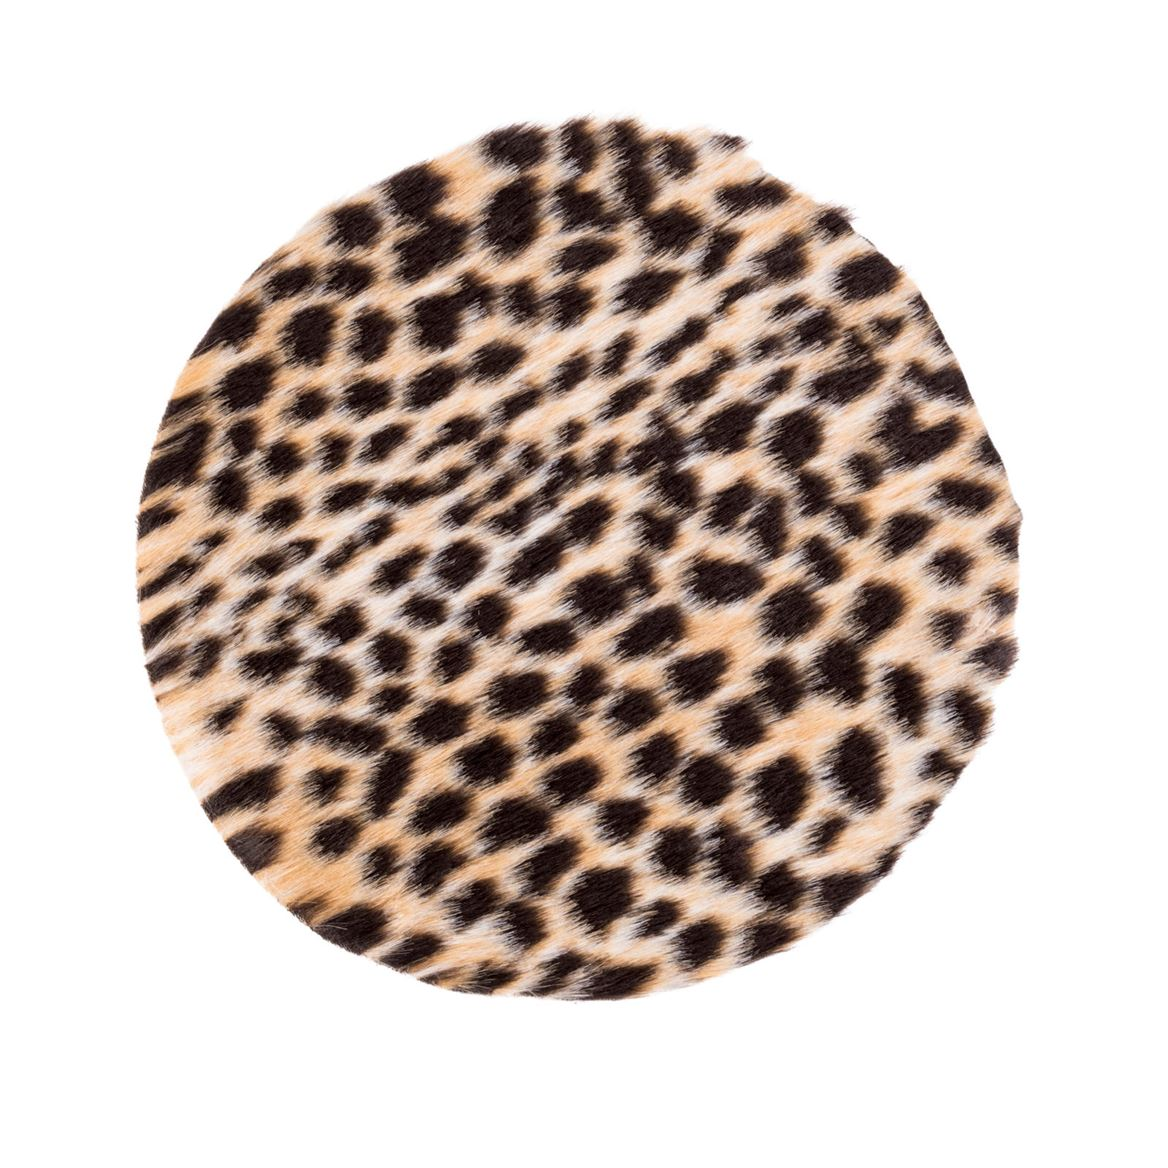 LEOPARD Set de table diverses couleurs Ø 32 cm_leopard-set-de-table-diverses-couleurs-ø-32-cm